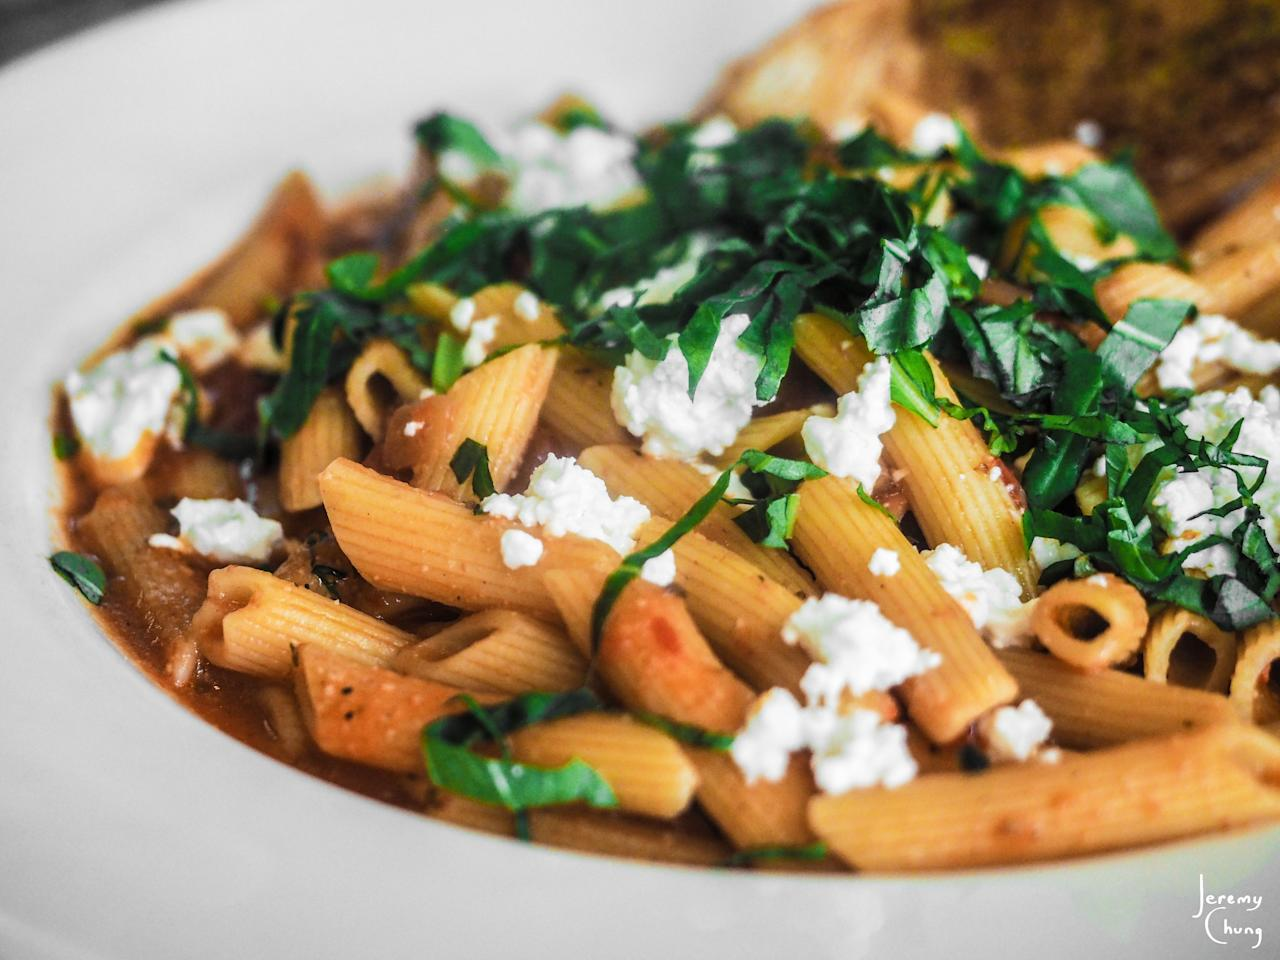 <p>The world of nutrition may seem ever more tribal and dogmatic, but healthy eating can still have its surprises. Like, did you know? Many of the most beneficial superfoods are not unpronounceable fruits or ancient grains. </p><p>Yep. According to the experts, sausages, cheese and pickled eggs count as superfoods in their own right. Hidden in plain sight. Keep scrolling for WH's list of the overlooked heroes that deserve a regular spot on your plate – and the cupboard staples you should oust for good.</p>